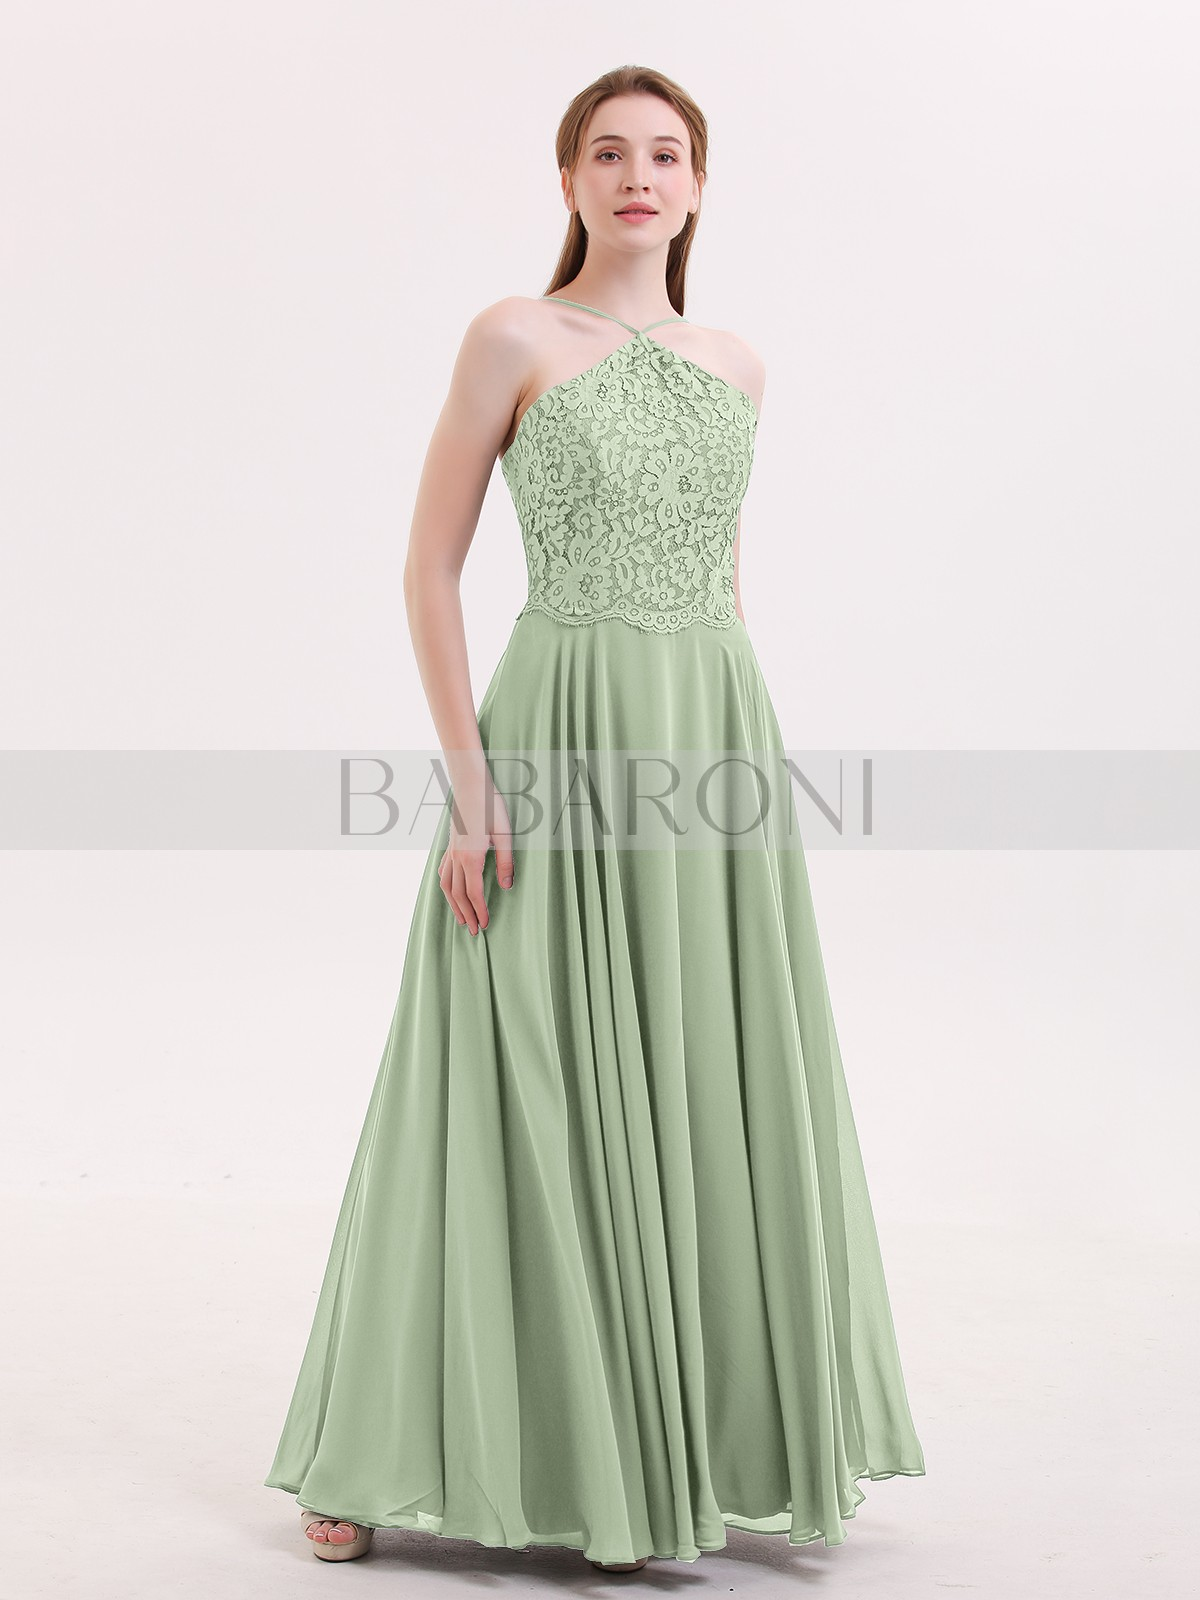 763e2a2a86f27 A-line Chiffon Stormy Zipper Lace Floor-length Halter Spaghetti Straps Long  Bridesmaid Dresses. Loading zoom